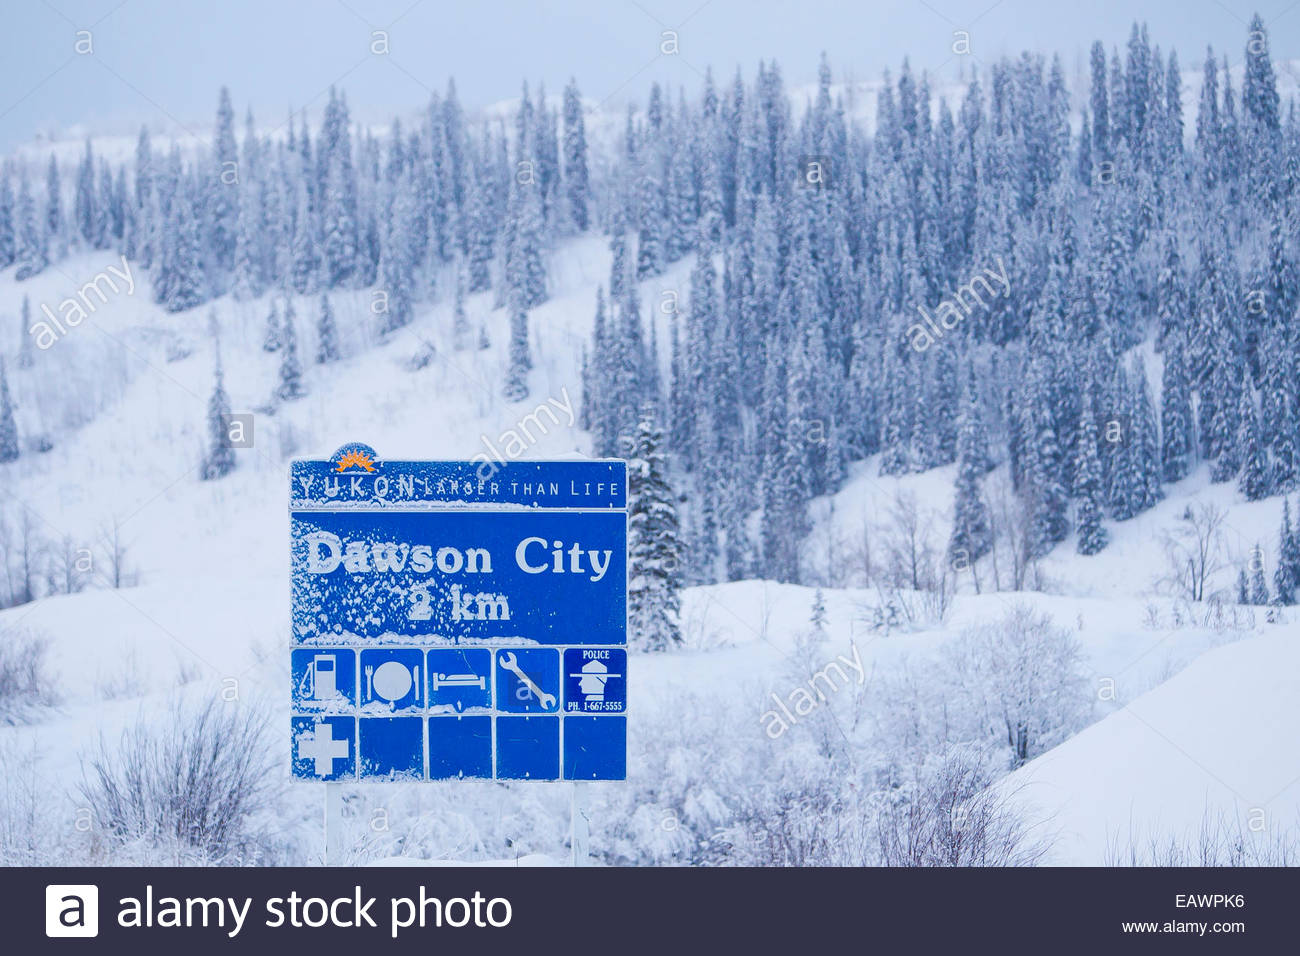 A blue highway information sign for upcoming Dawson City, in a snowy landscape. - Stock Image